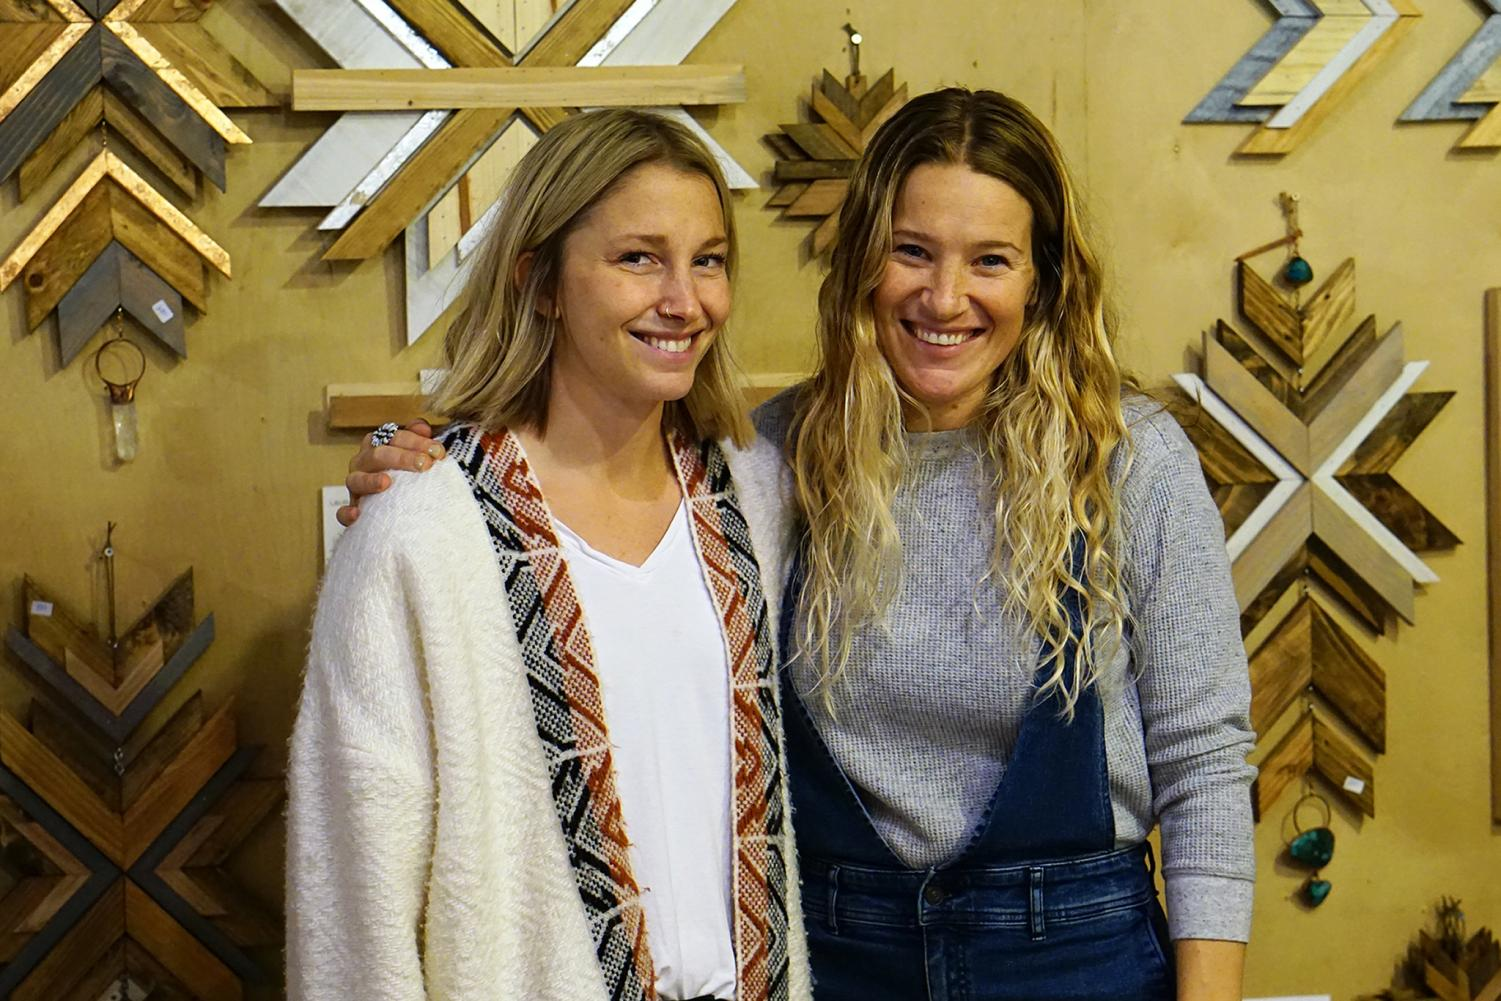 Laura Burkhart and Tawni Eakman, the founders of the Full Moon Market